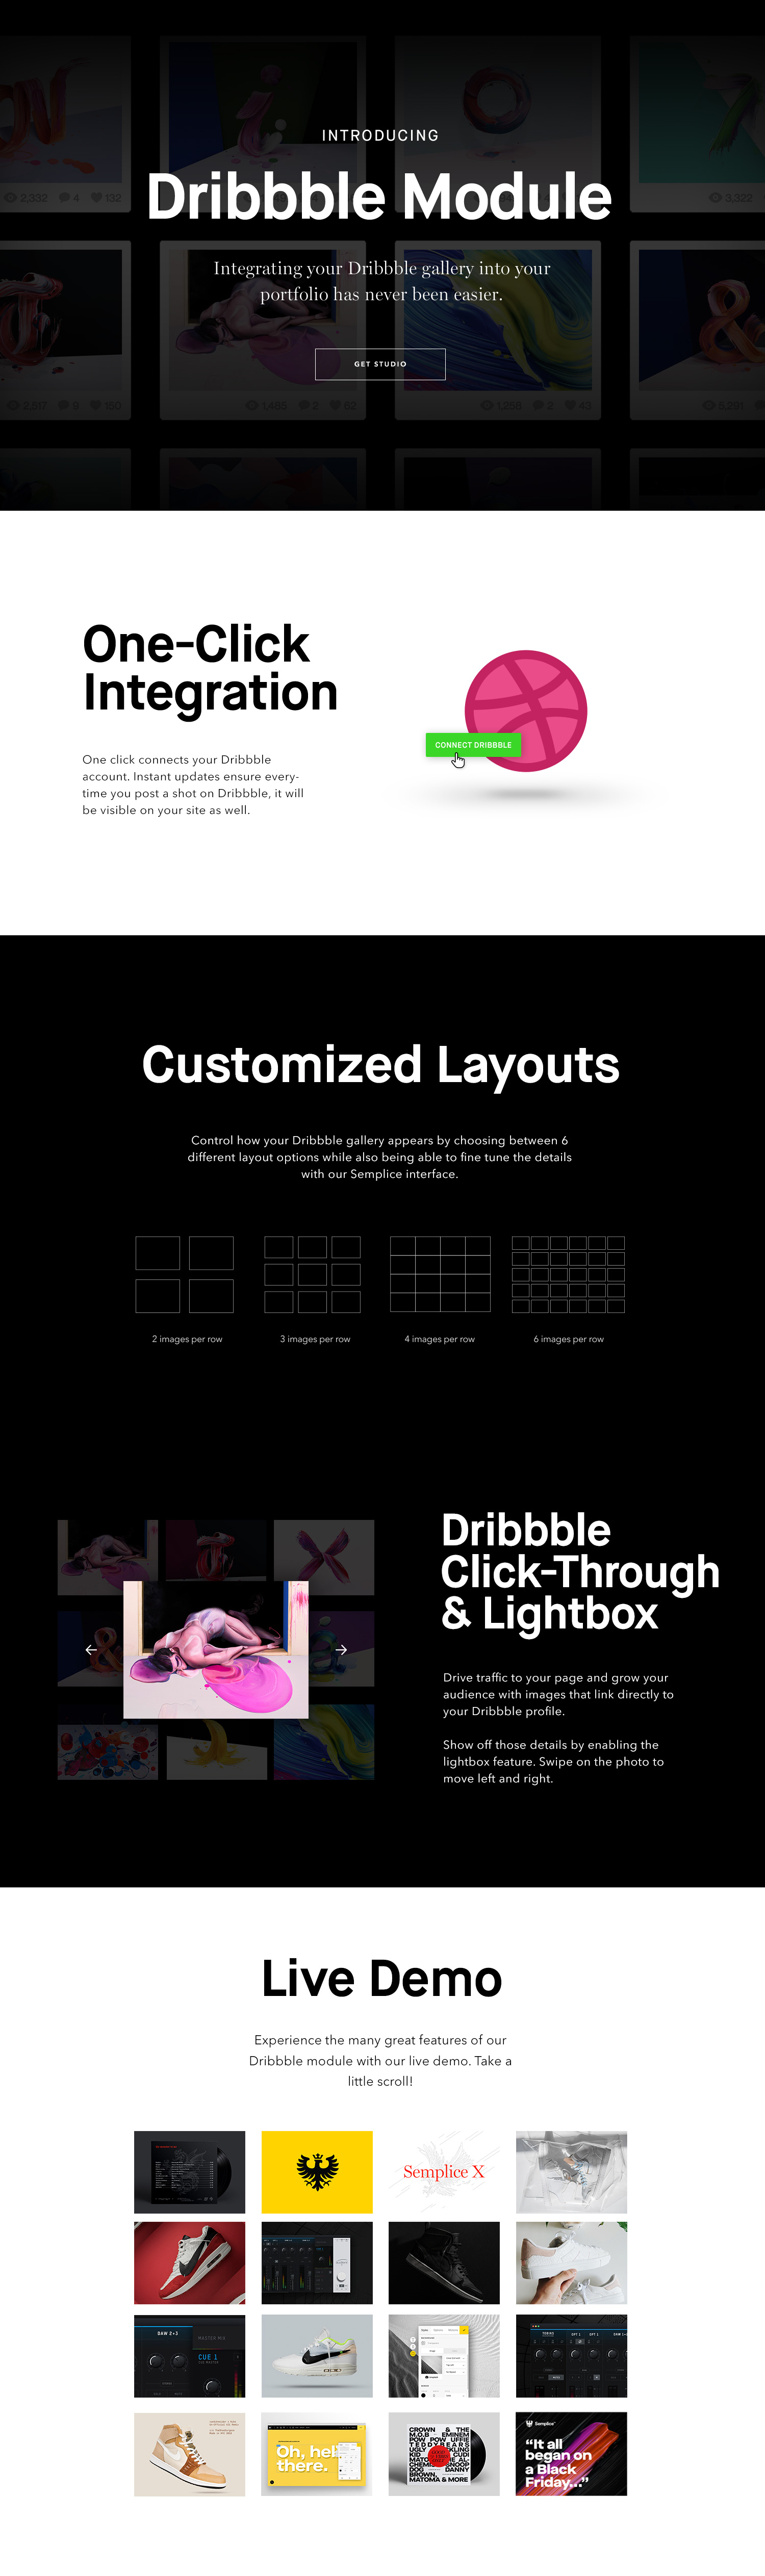 Dribbble-Full-Page